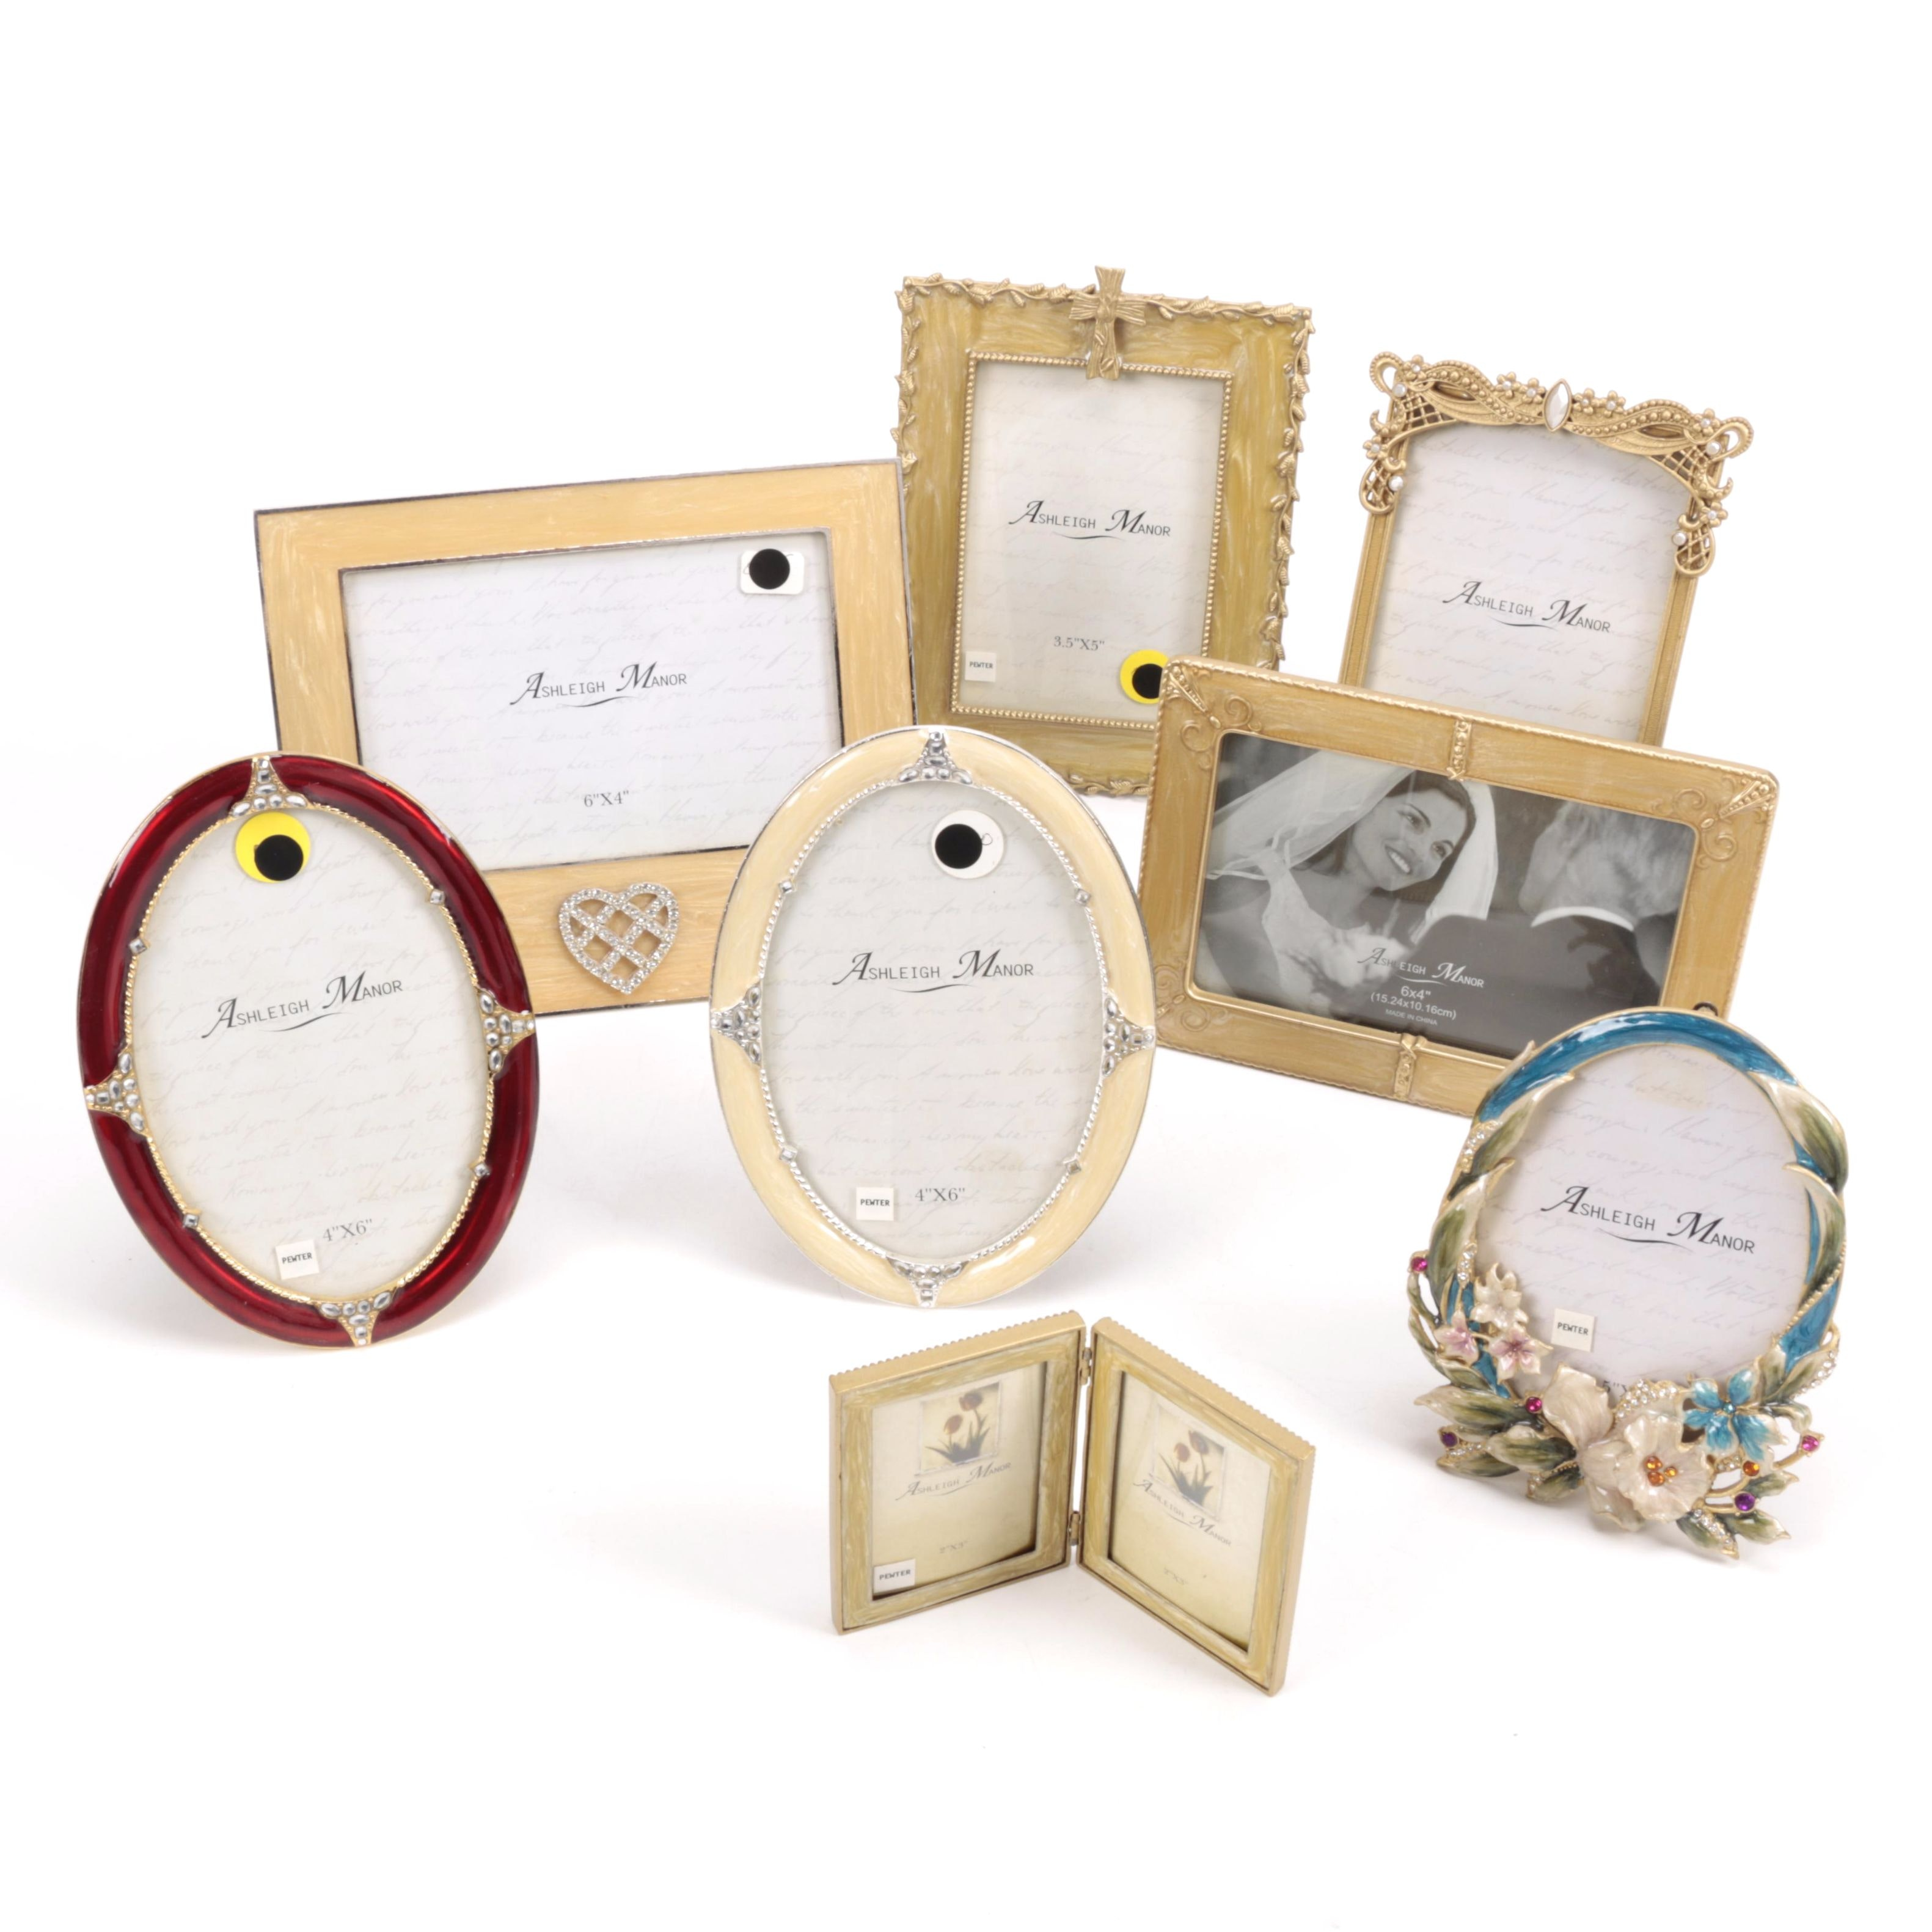 Ashleigh Manor Picture Frames